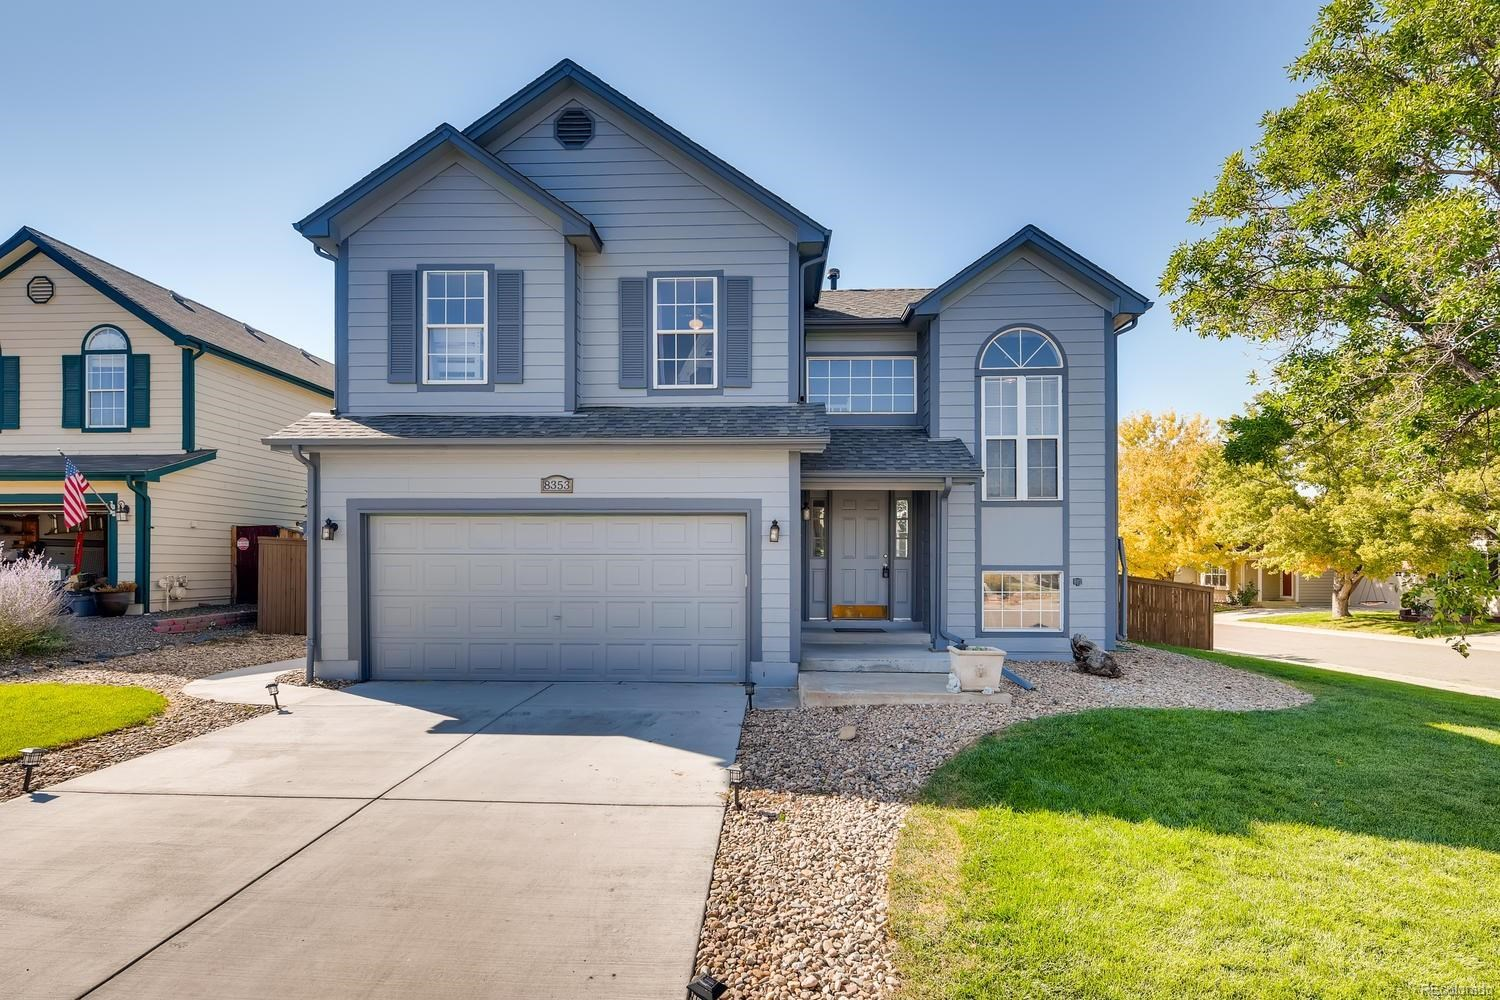 MLS# 6533344 - 1 - 8353 White Cloud Court, Highlands Ranch, CO 80126